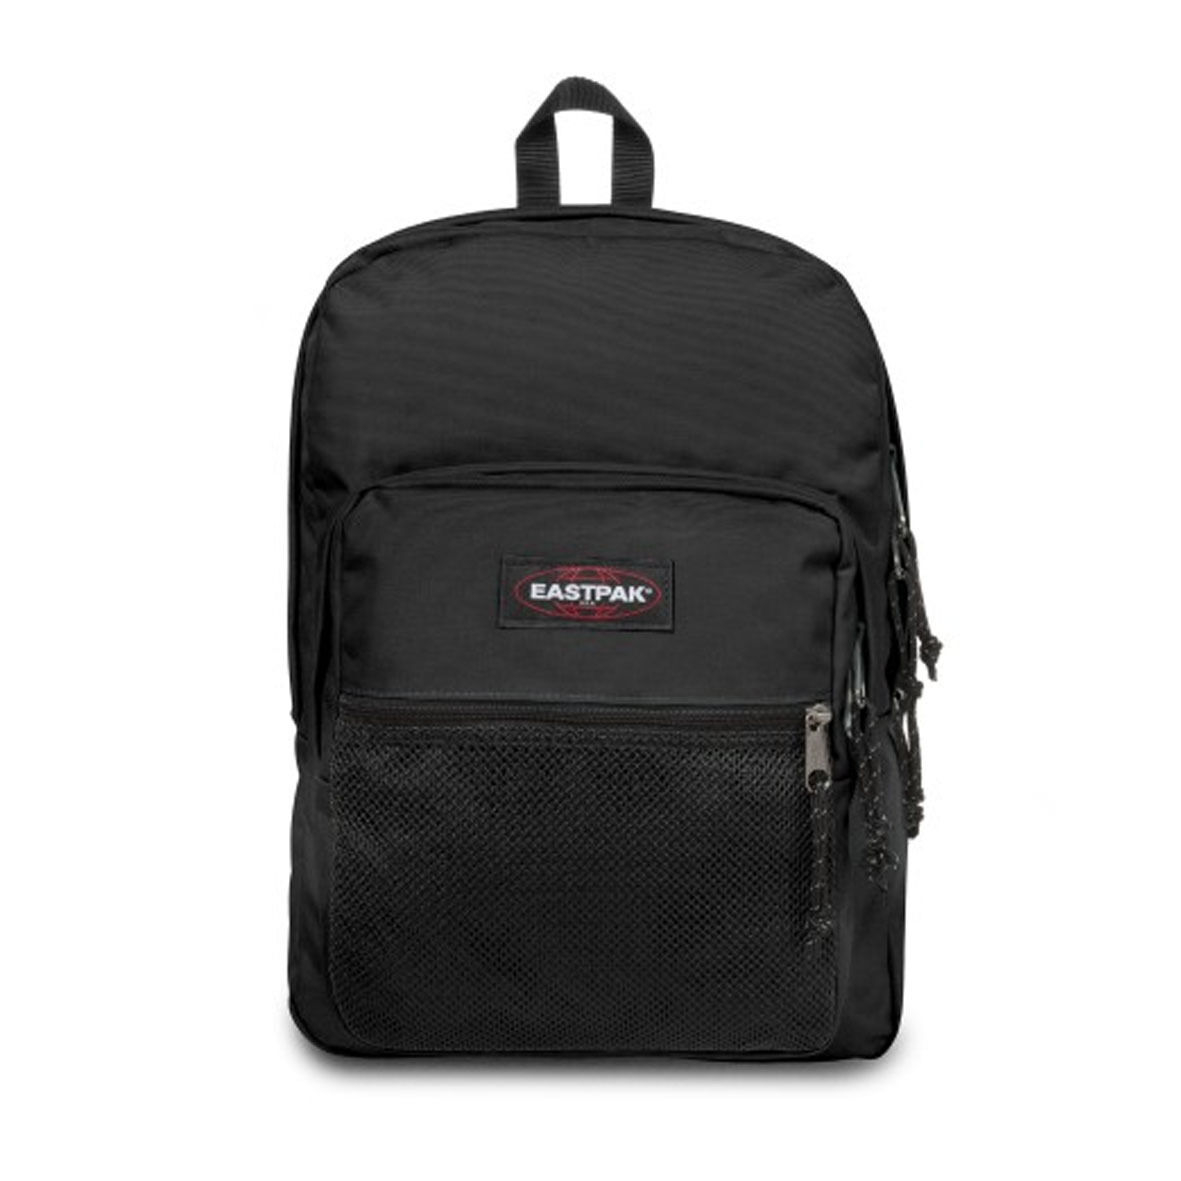 Zaino EASTPAK 38 L nero pinnacle BLACK 4 tasche impermeabilizzato in cordura